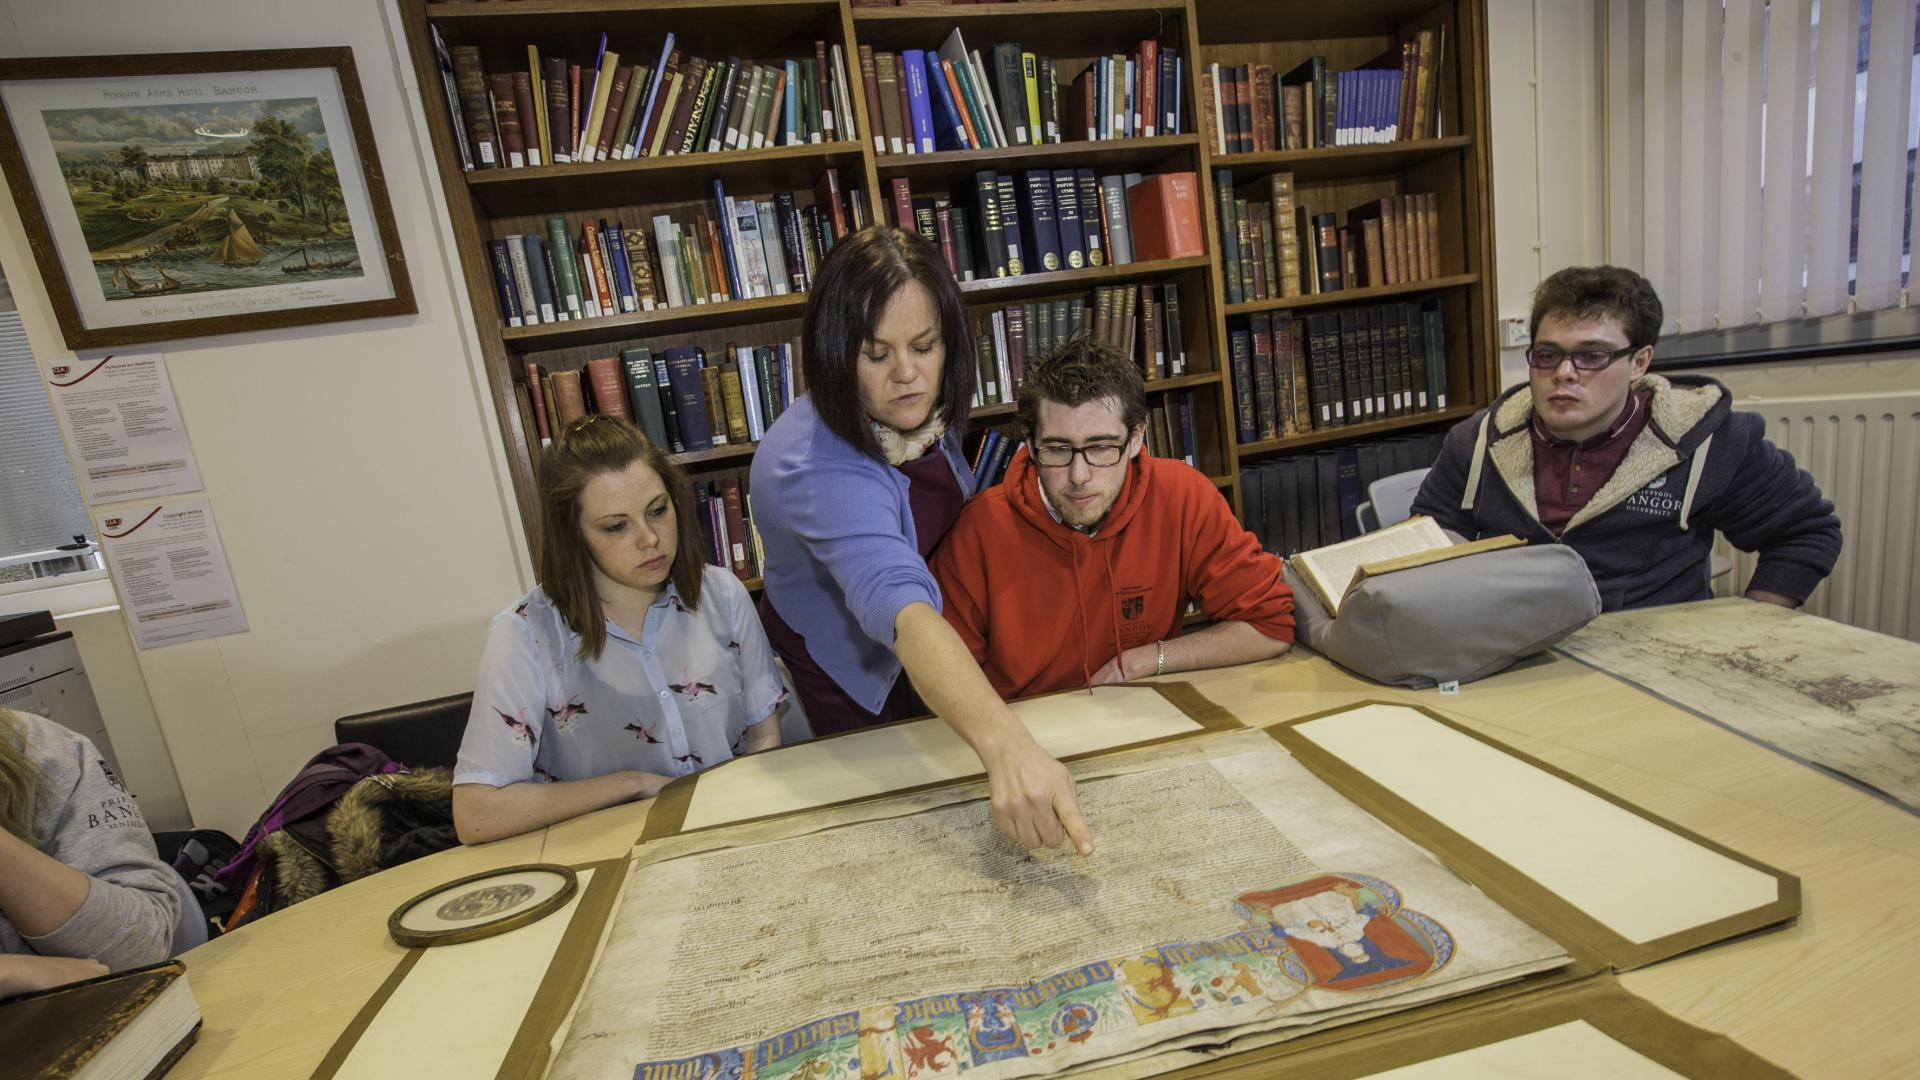 Seminar setting with tutor and students looking at a historic document.